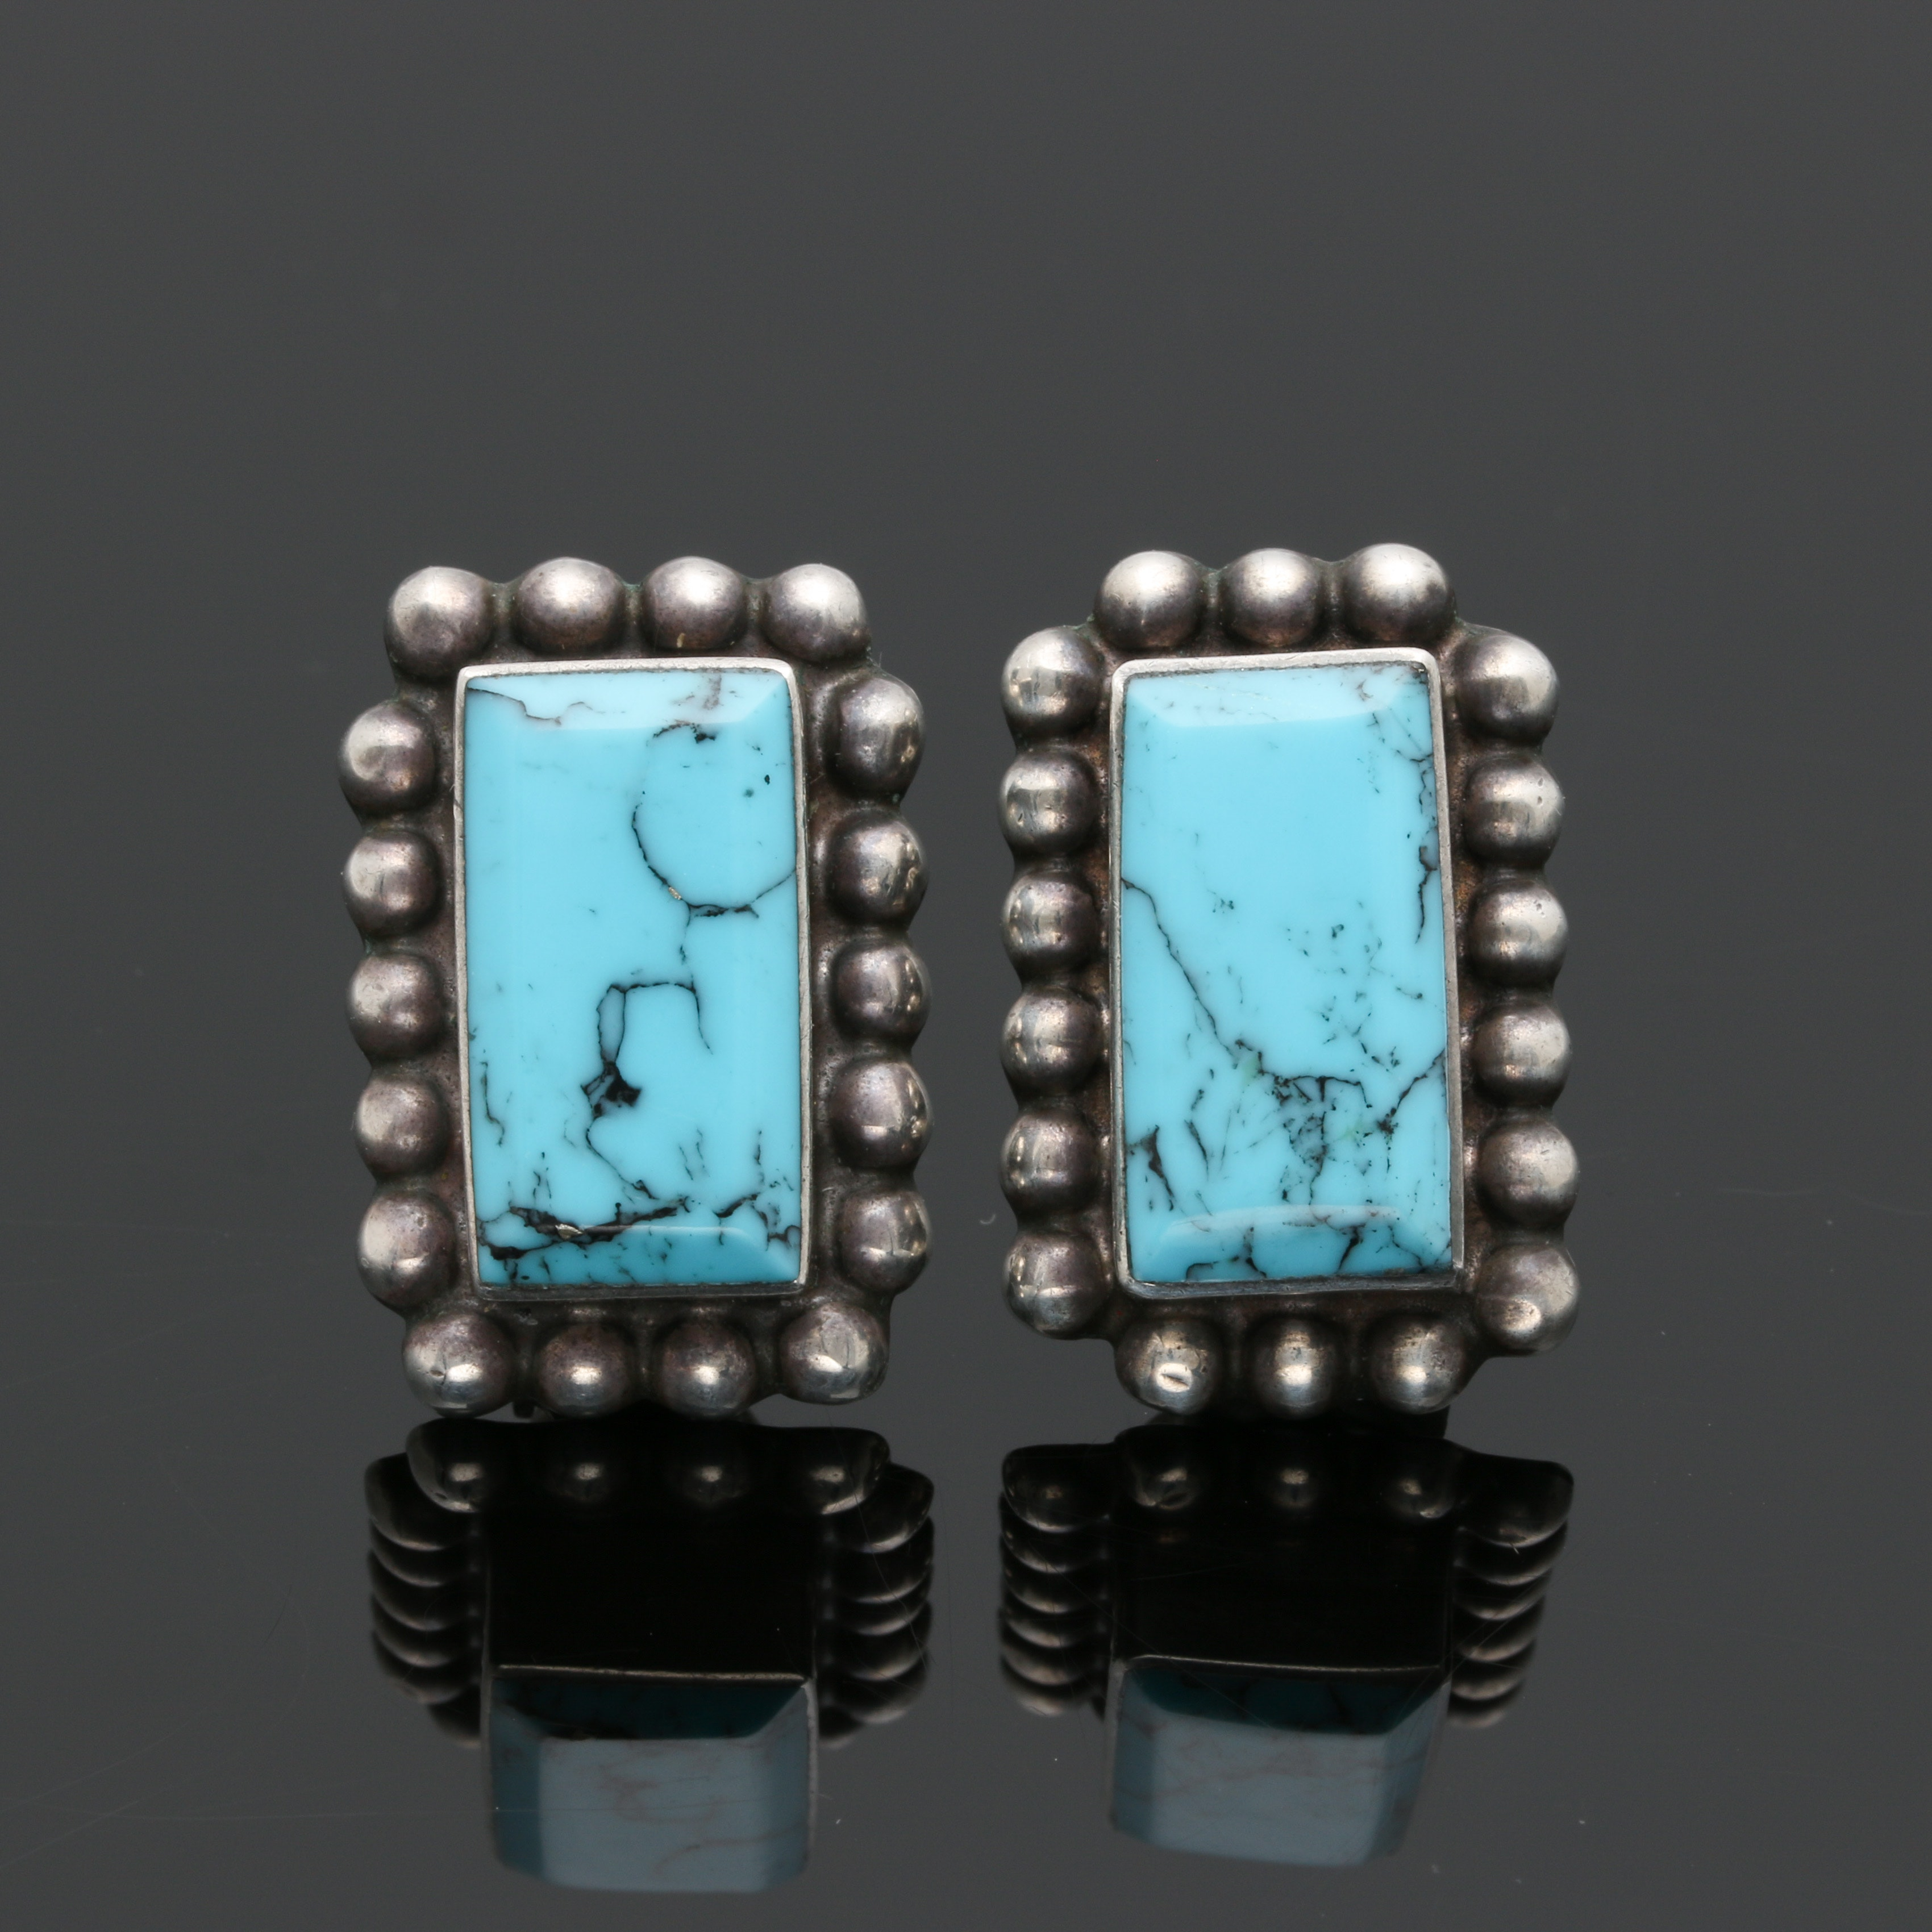 Vintage Calderon Taxco Sterling Silver Turquoise Scalloped Earrings